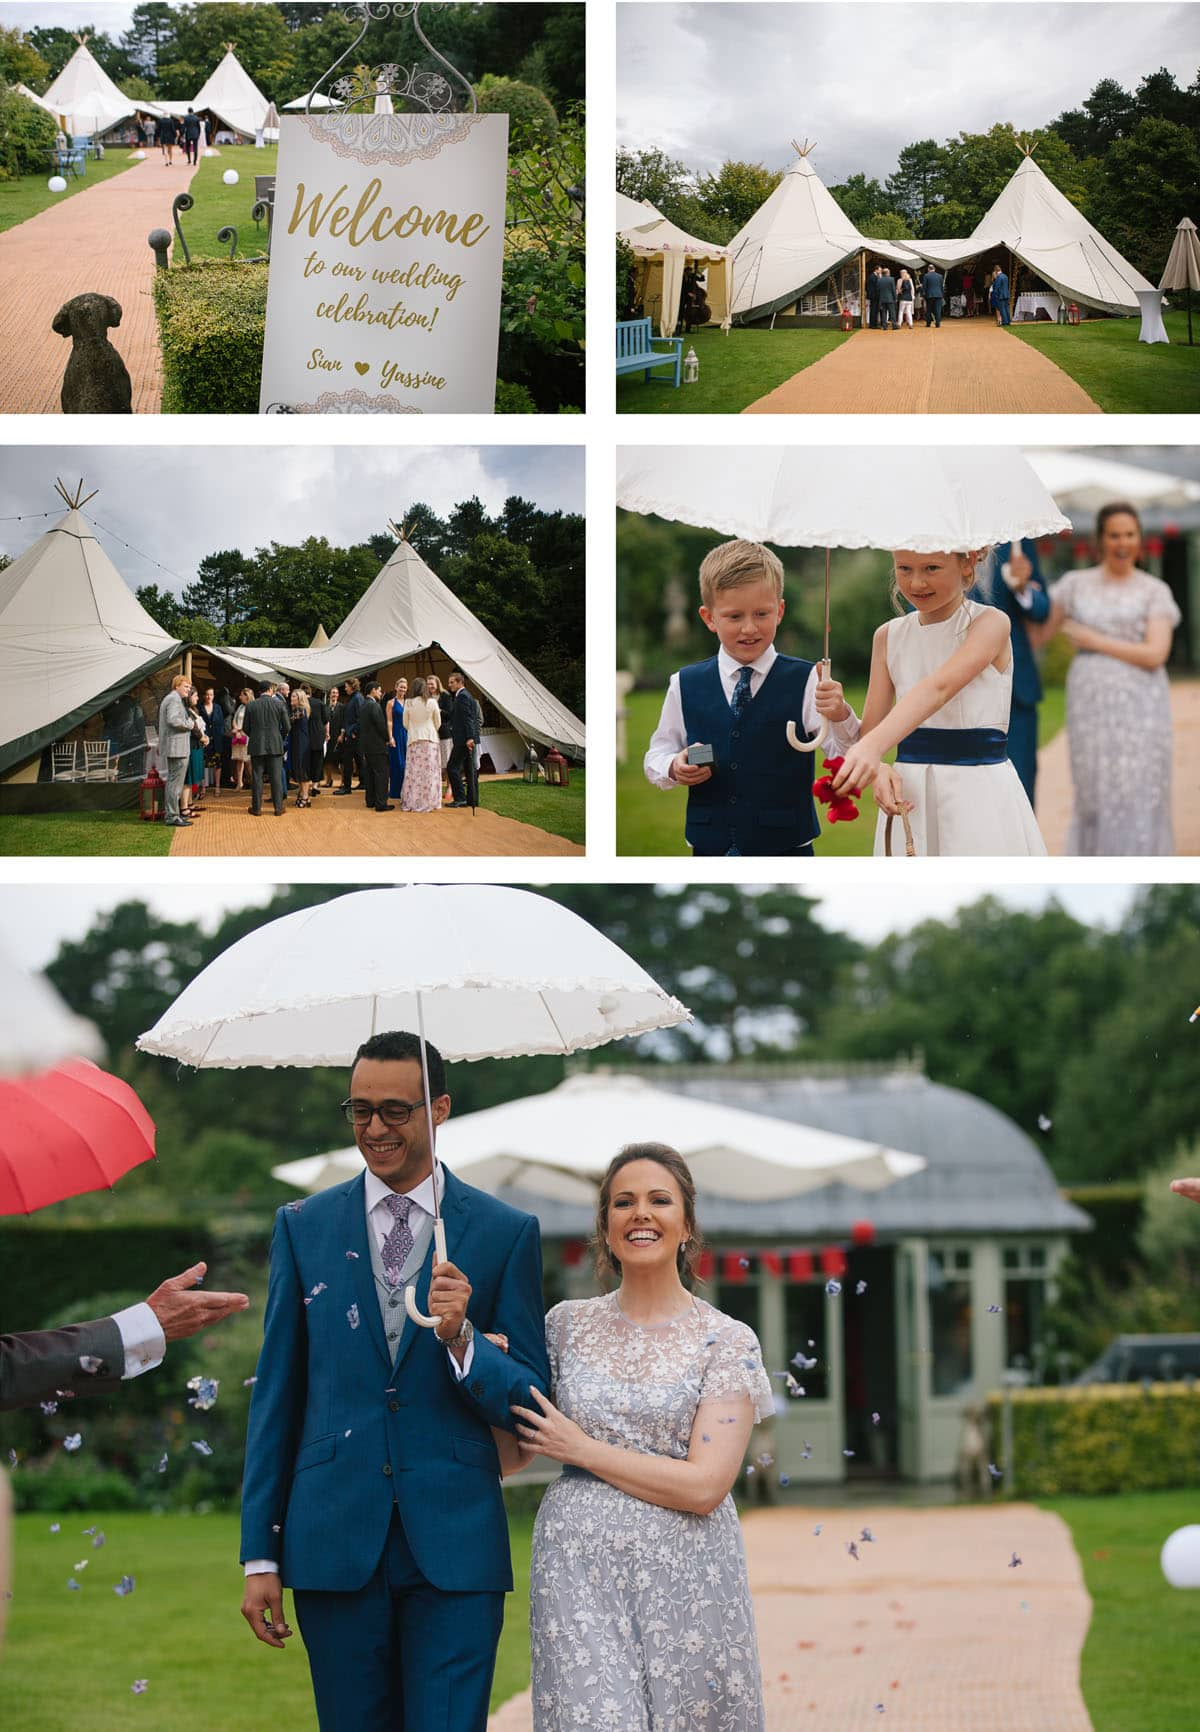 A collage of images showing the arrival of guests at this quirky Moroccan inspired teepee wedding. The bride wears a light blue dress.